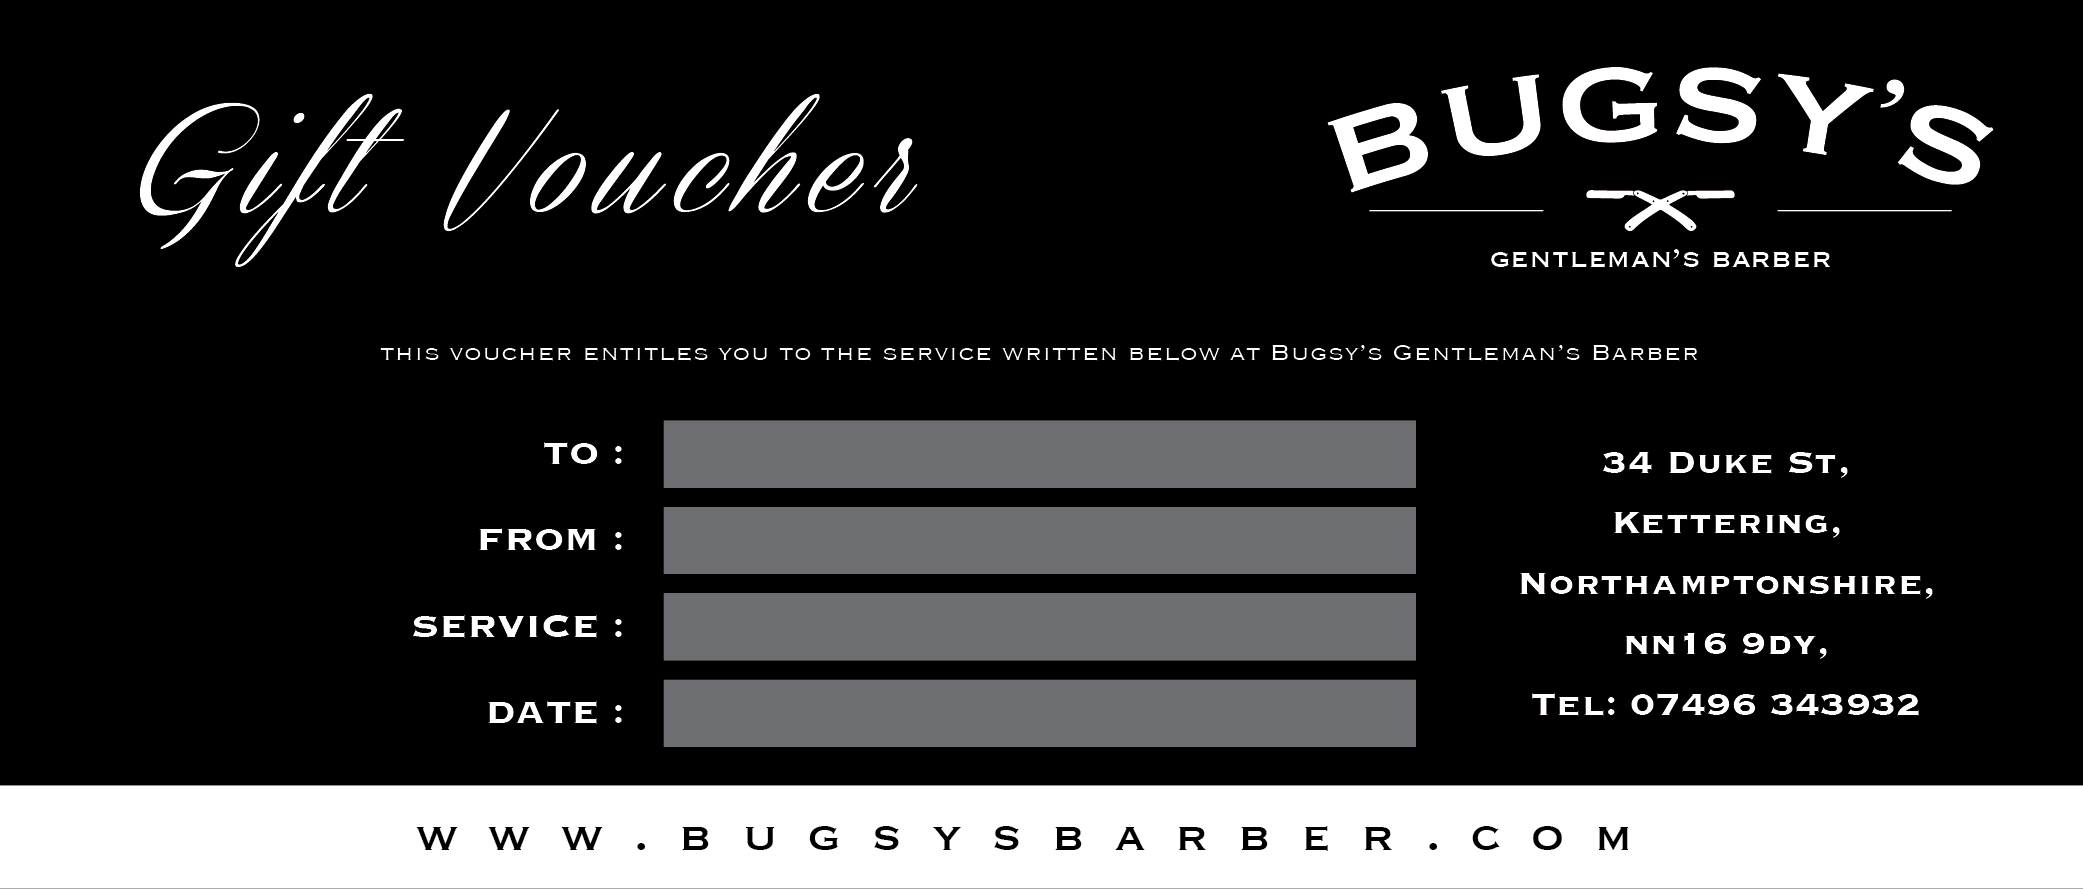 haircut gift certificate bugsys barber gift vouchers mens haircuts in kettering 5638